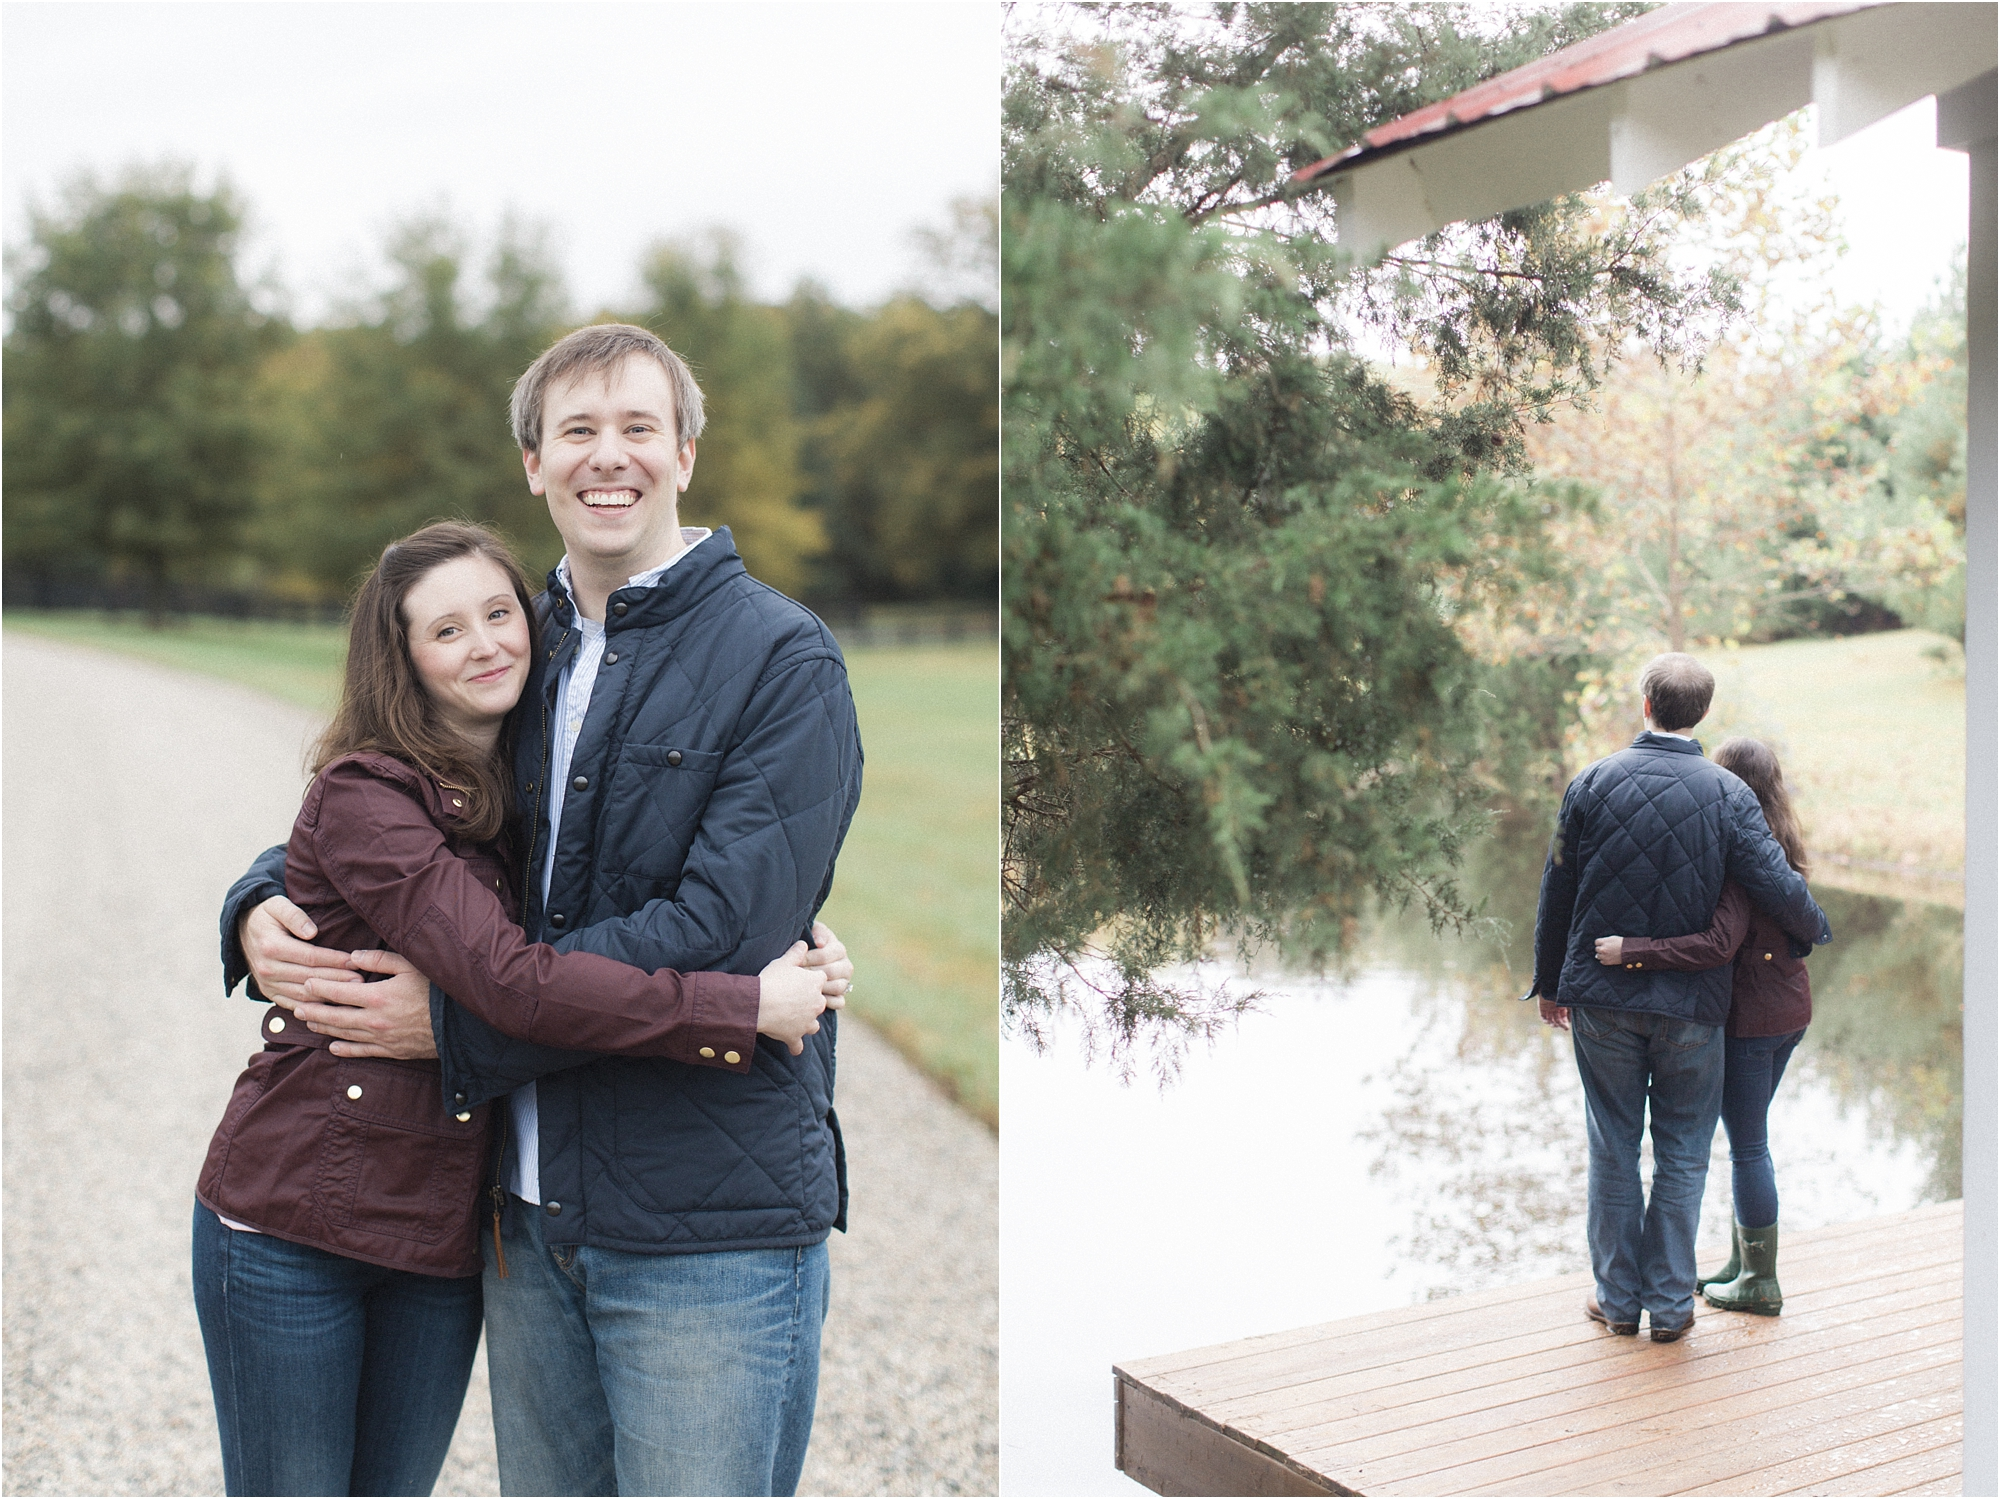 stephanie-yonce-photography-richmond-virginia-fall-farm-engagement-session-photos_004a.JPG